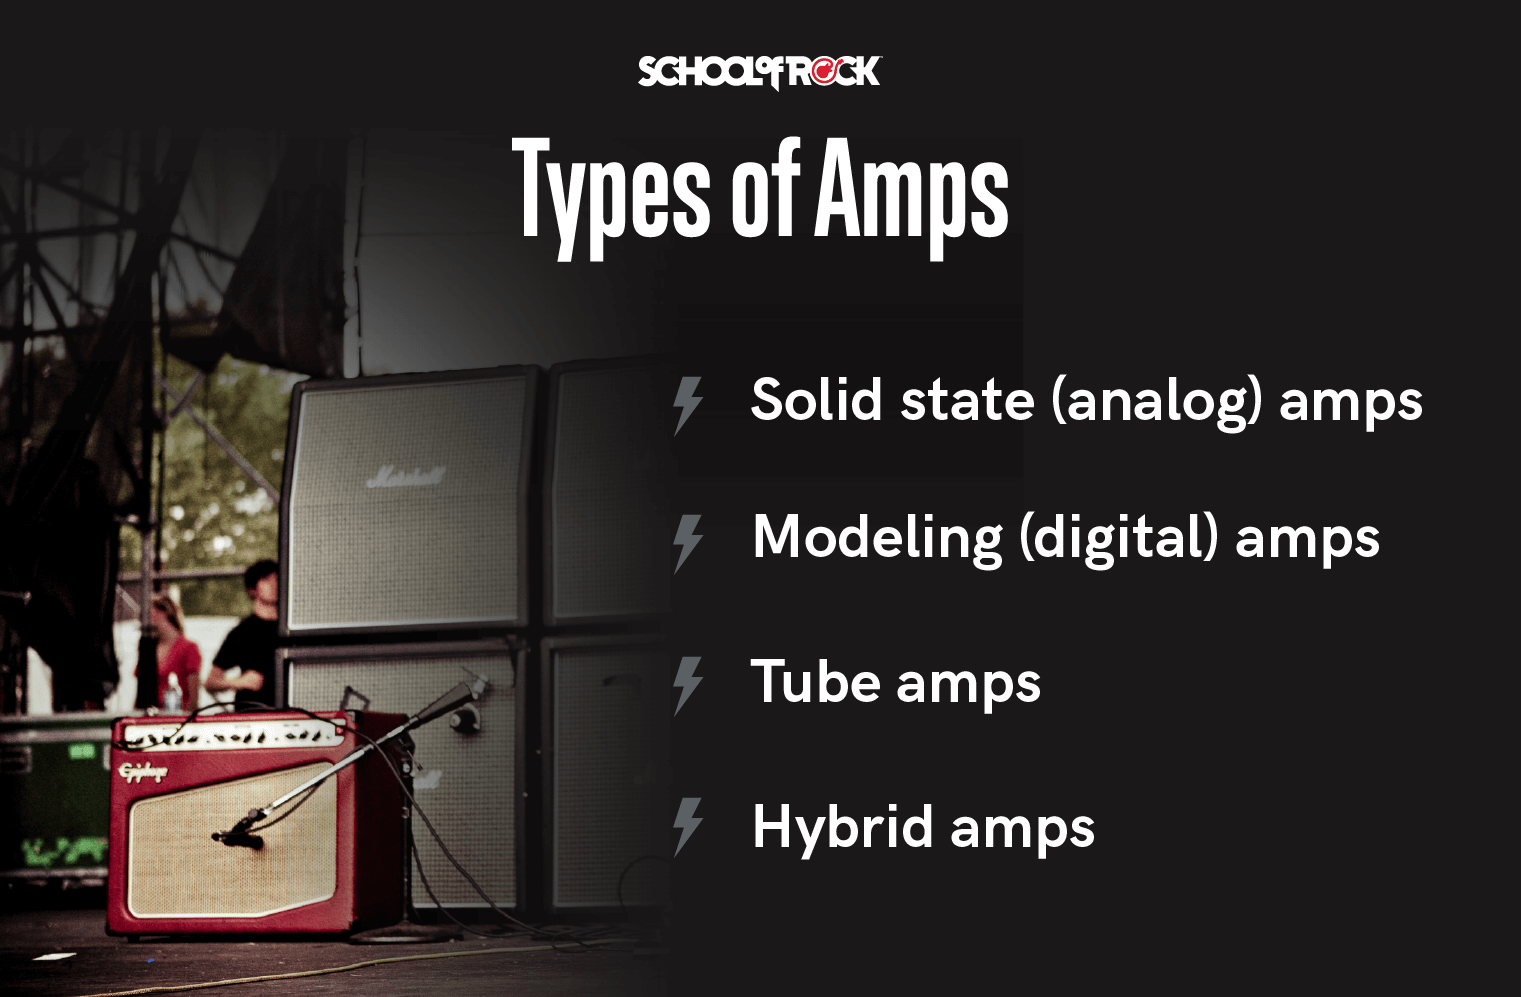 types of guitar amps include solid state, modeling, tube and hybrid.